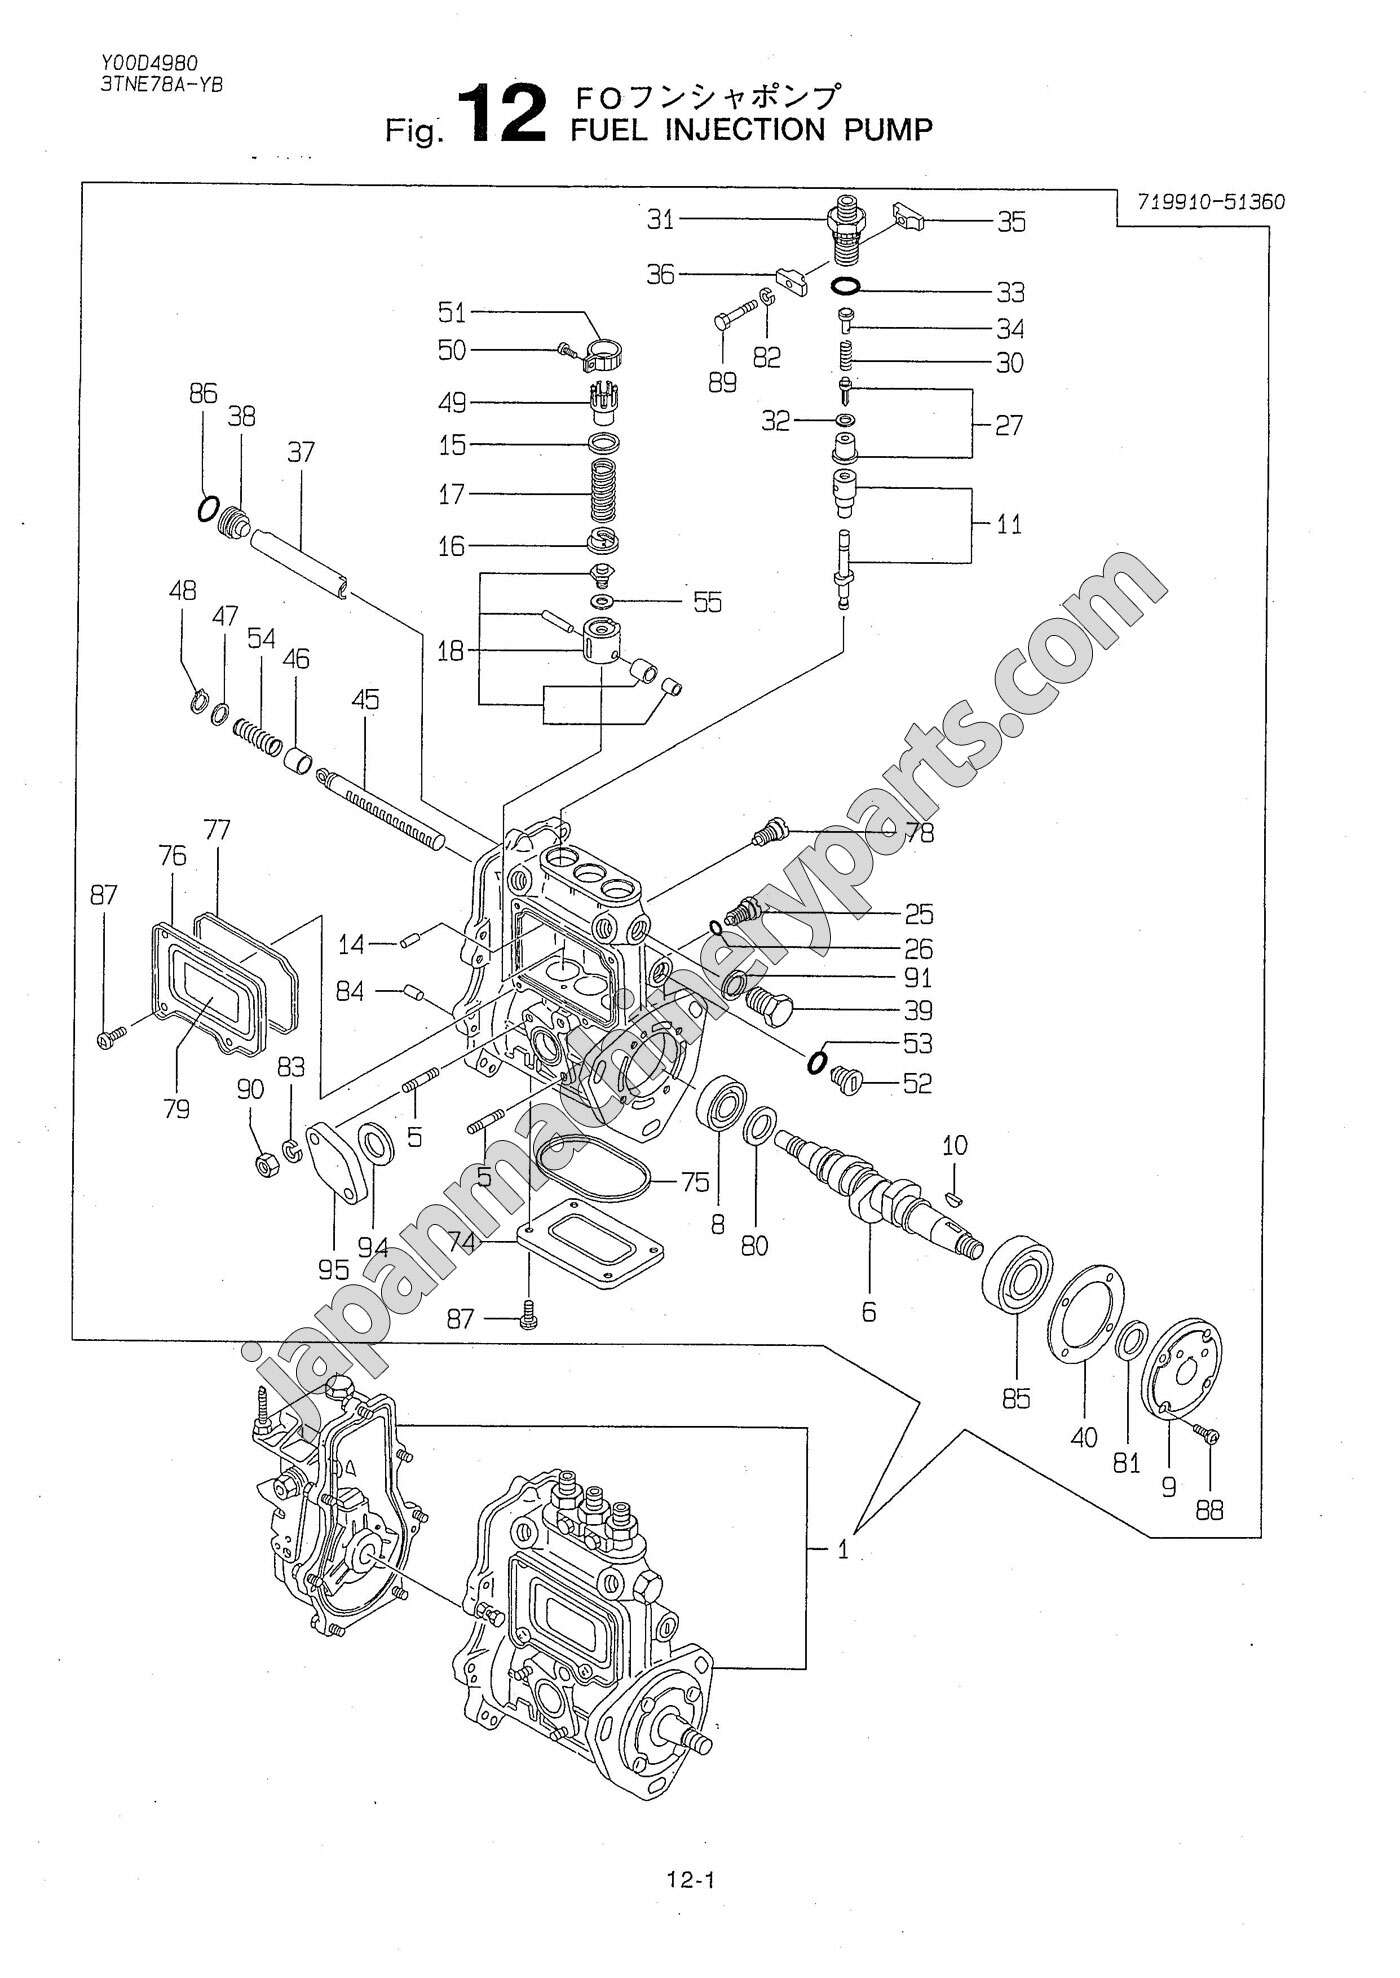 Vp44 Ecm Motor Wiring Diagram Opinions About X13 Pump Harness And Fuse Box Ge